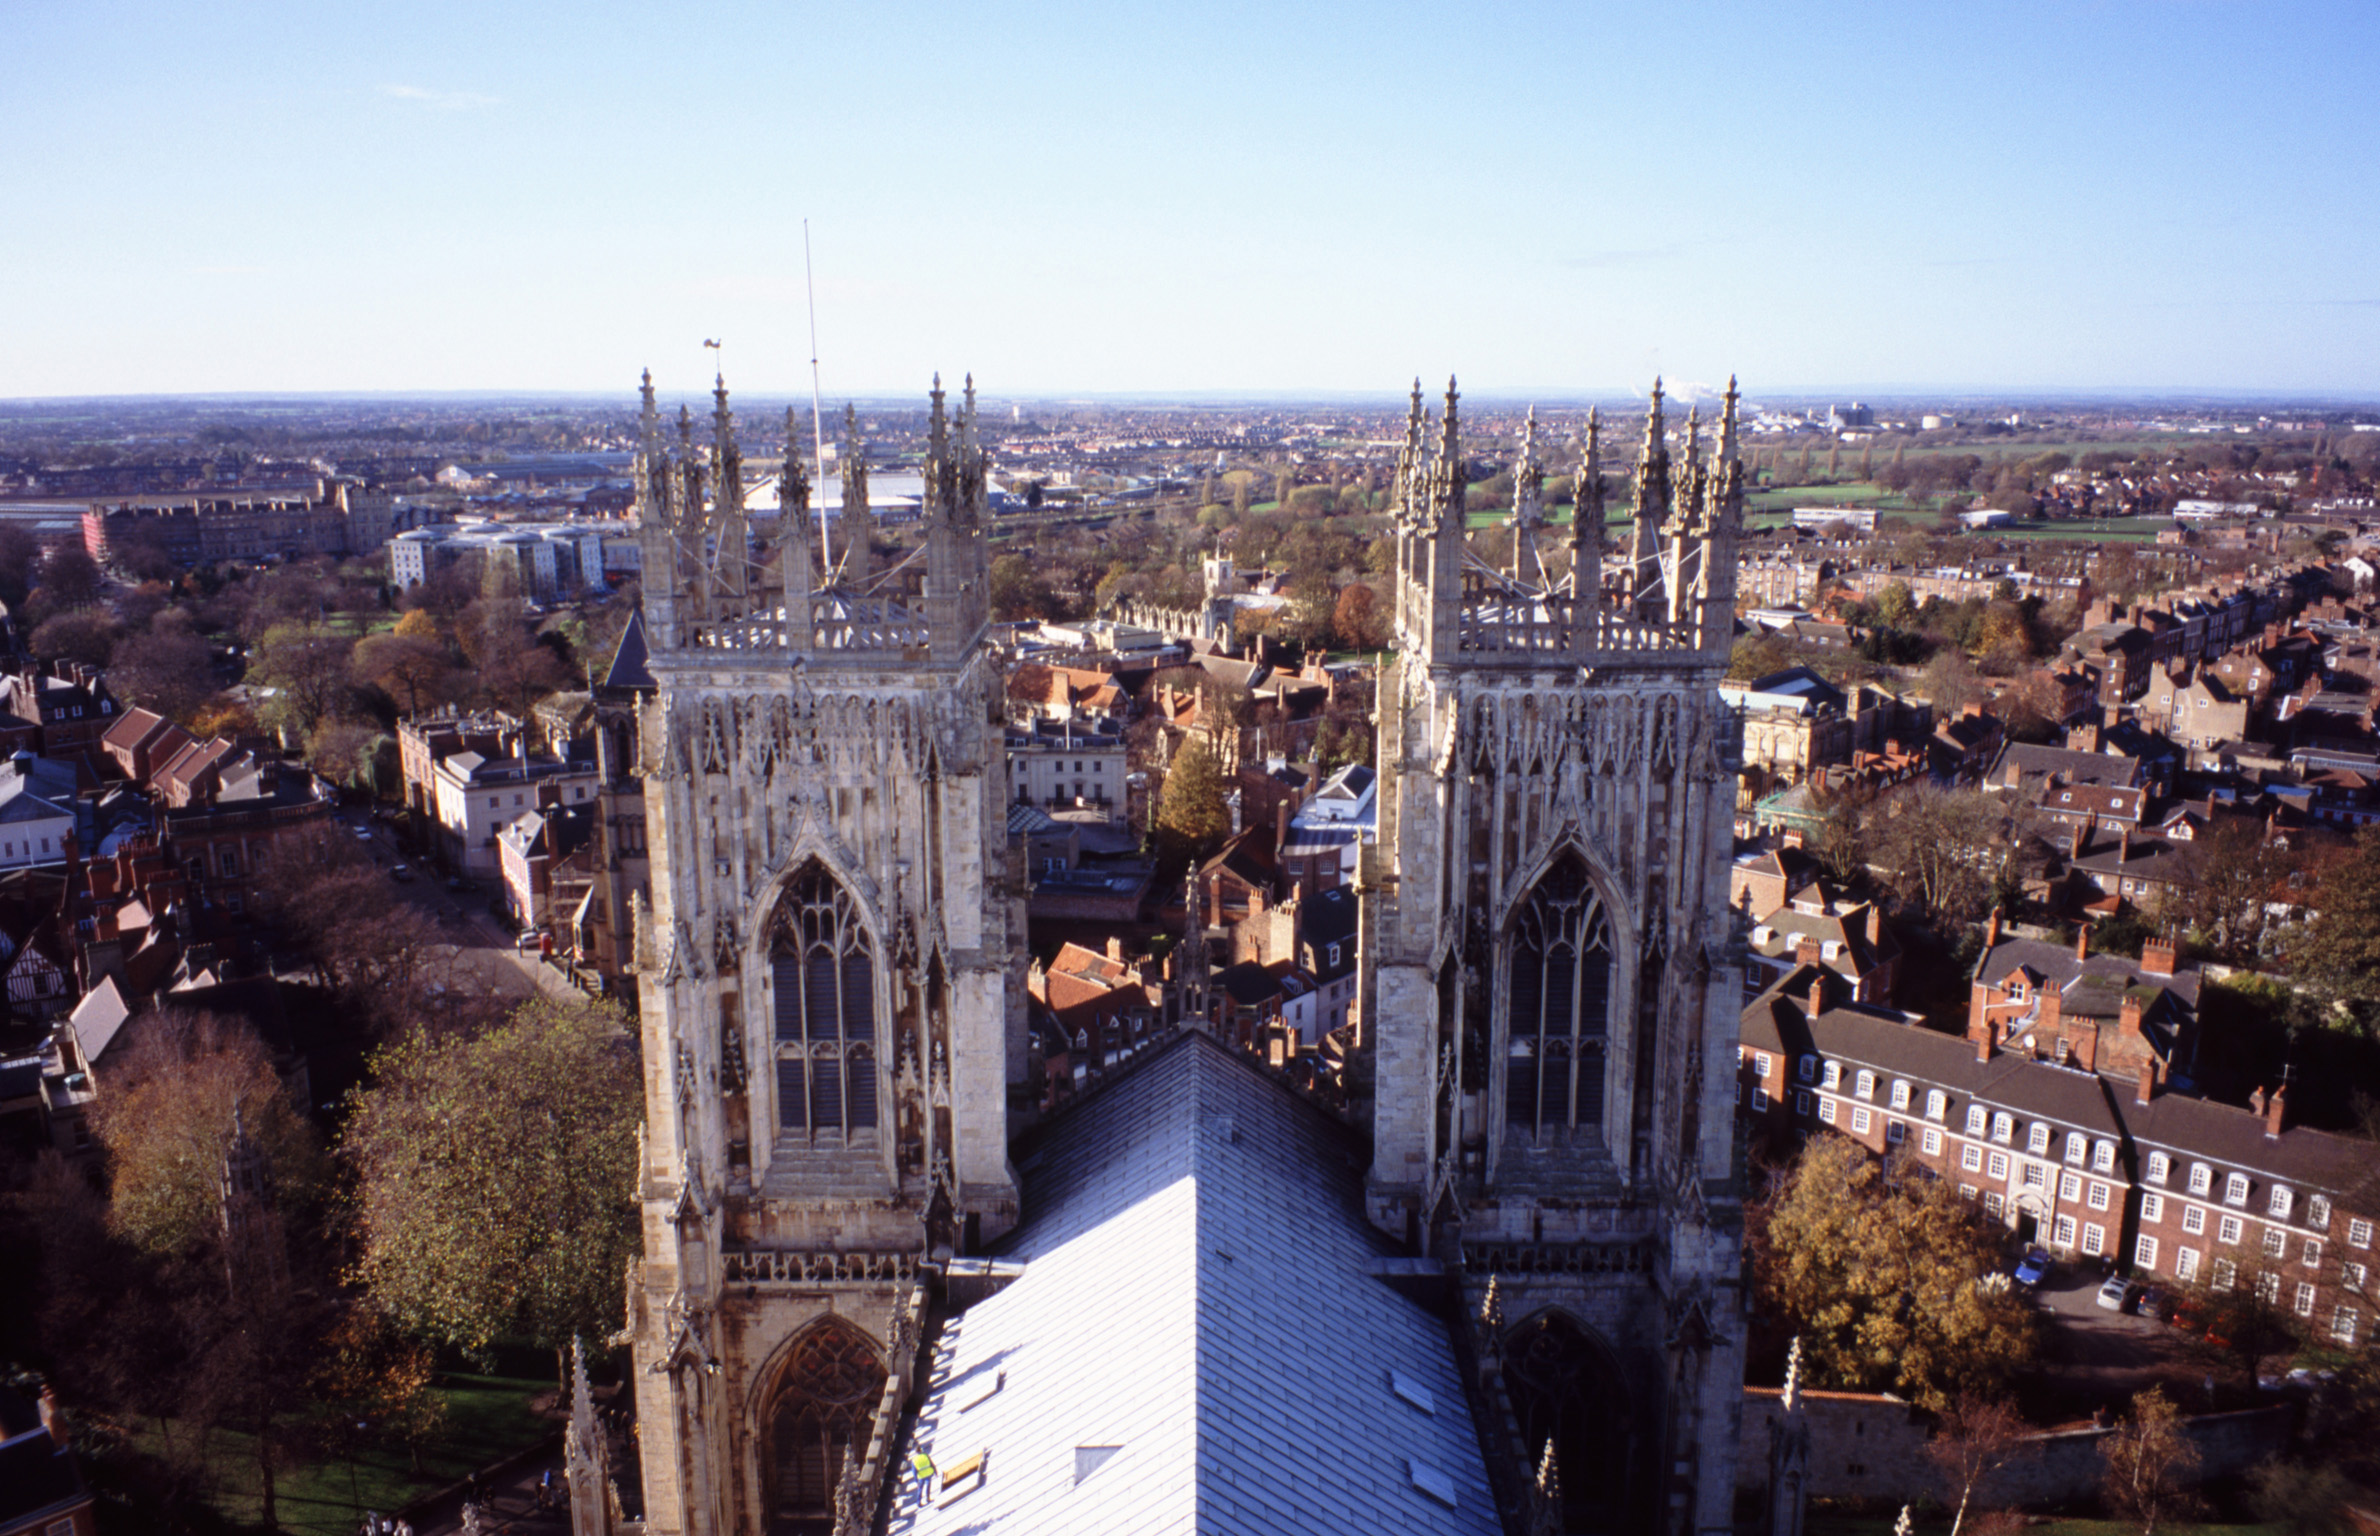 Aerial view of the twin towers on York Minster cathedral overlooking the city and skyline on a sunny blue sky day